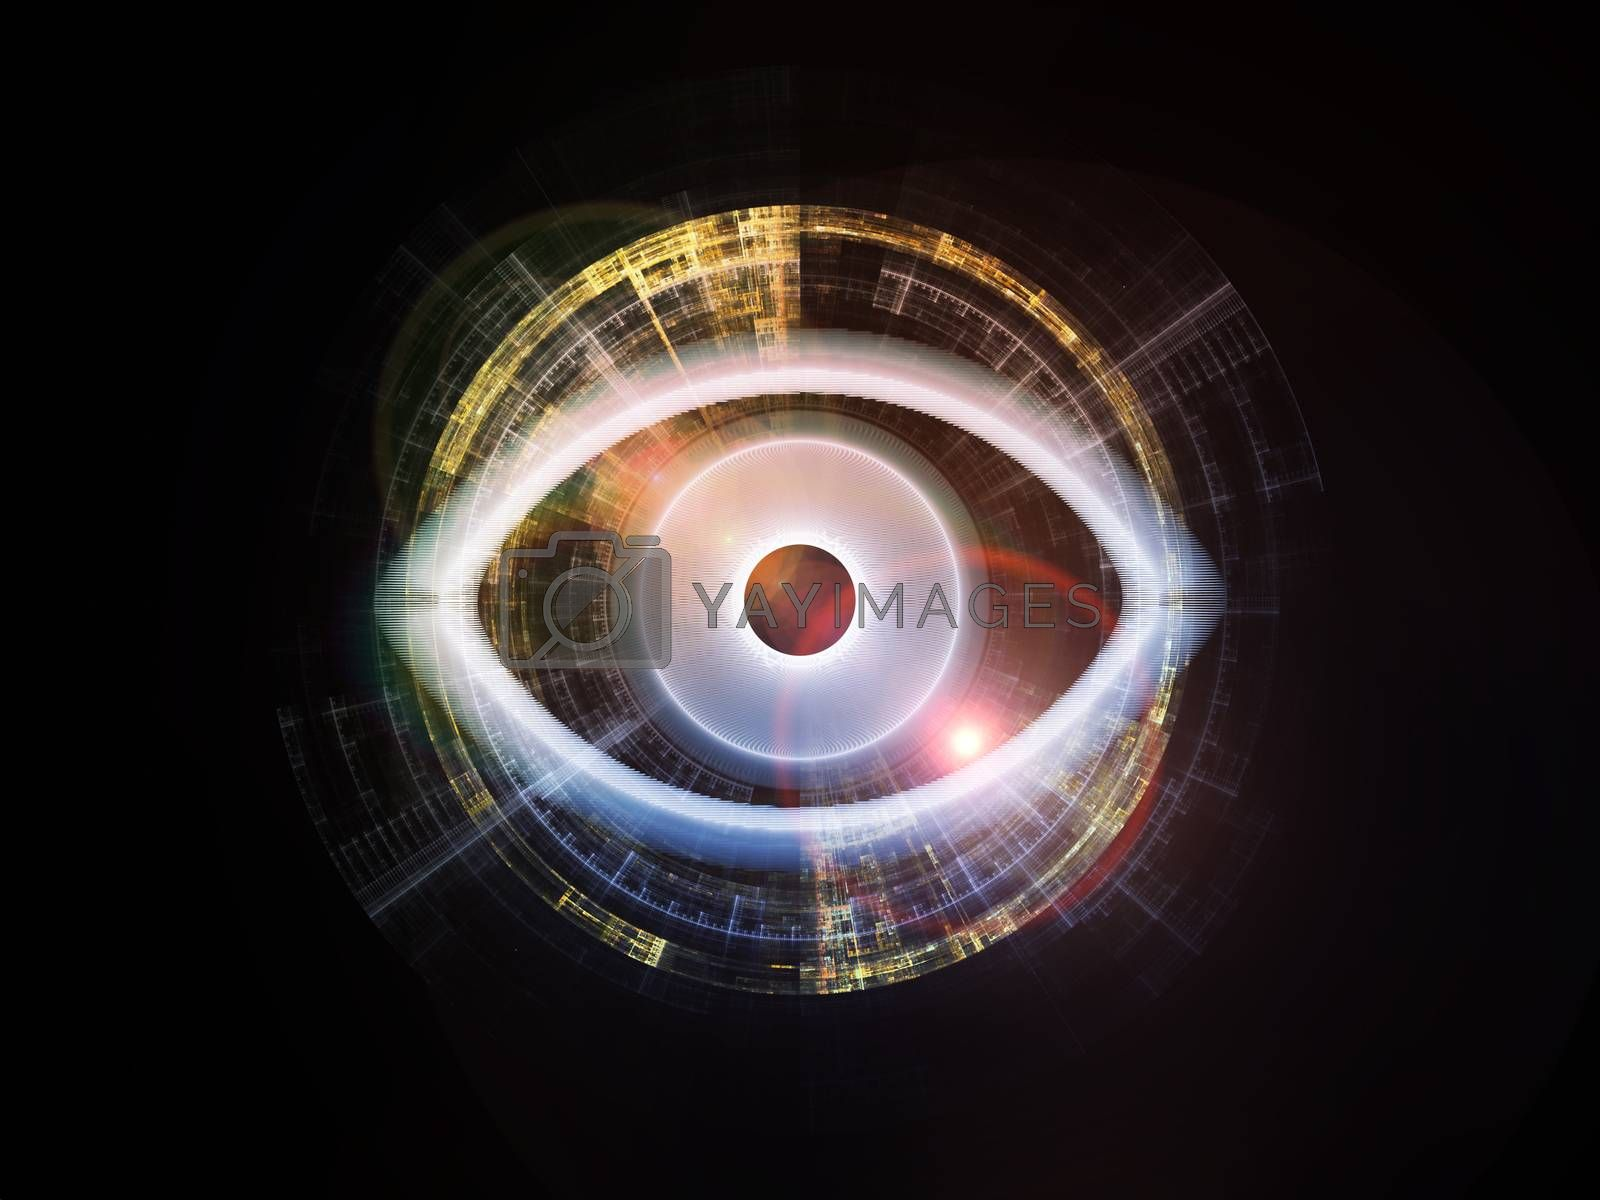 Eye Particle series. Composition of eye shape and fractal elements on the subject of spirituality, art and  technology